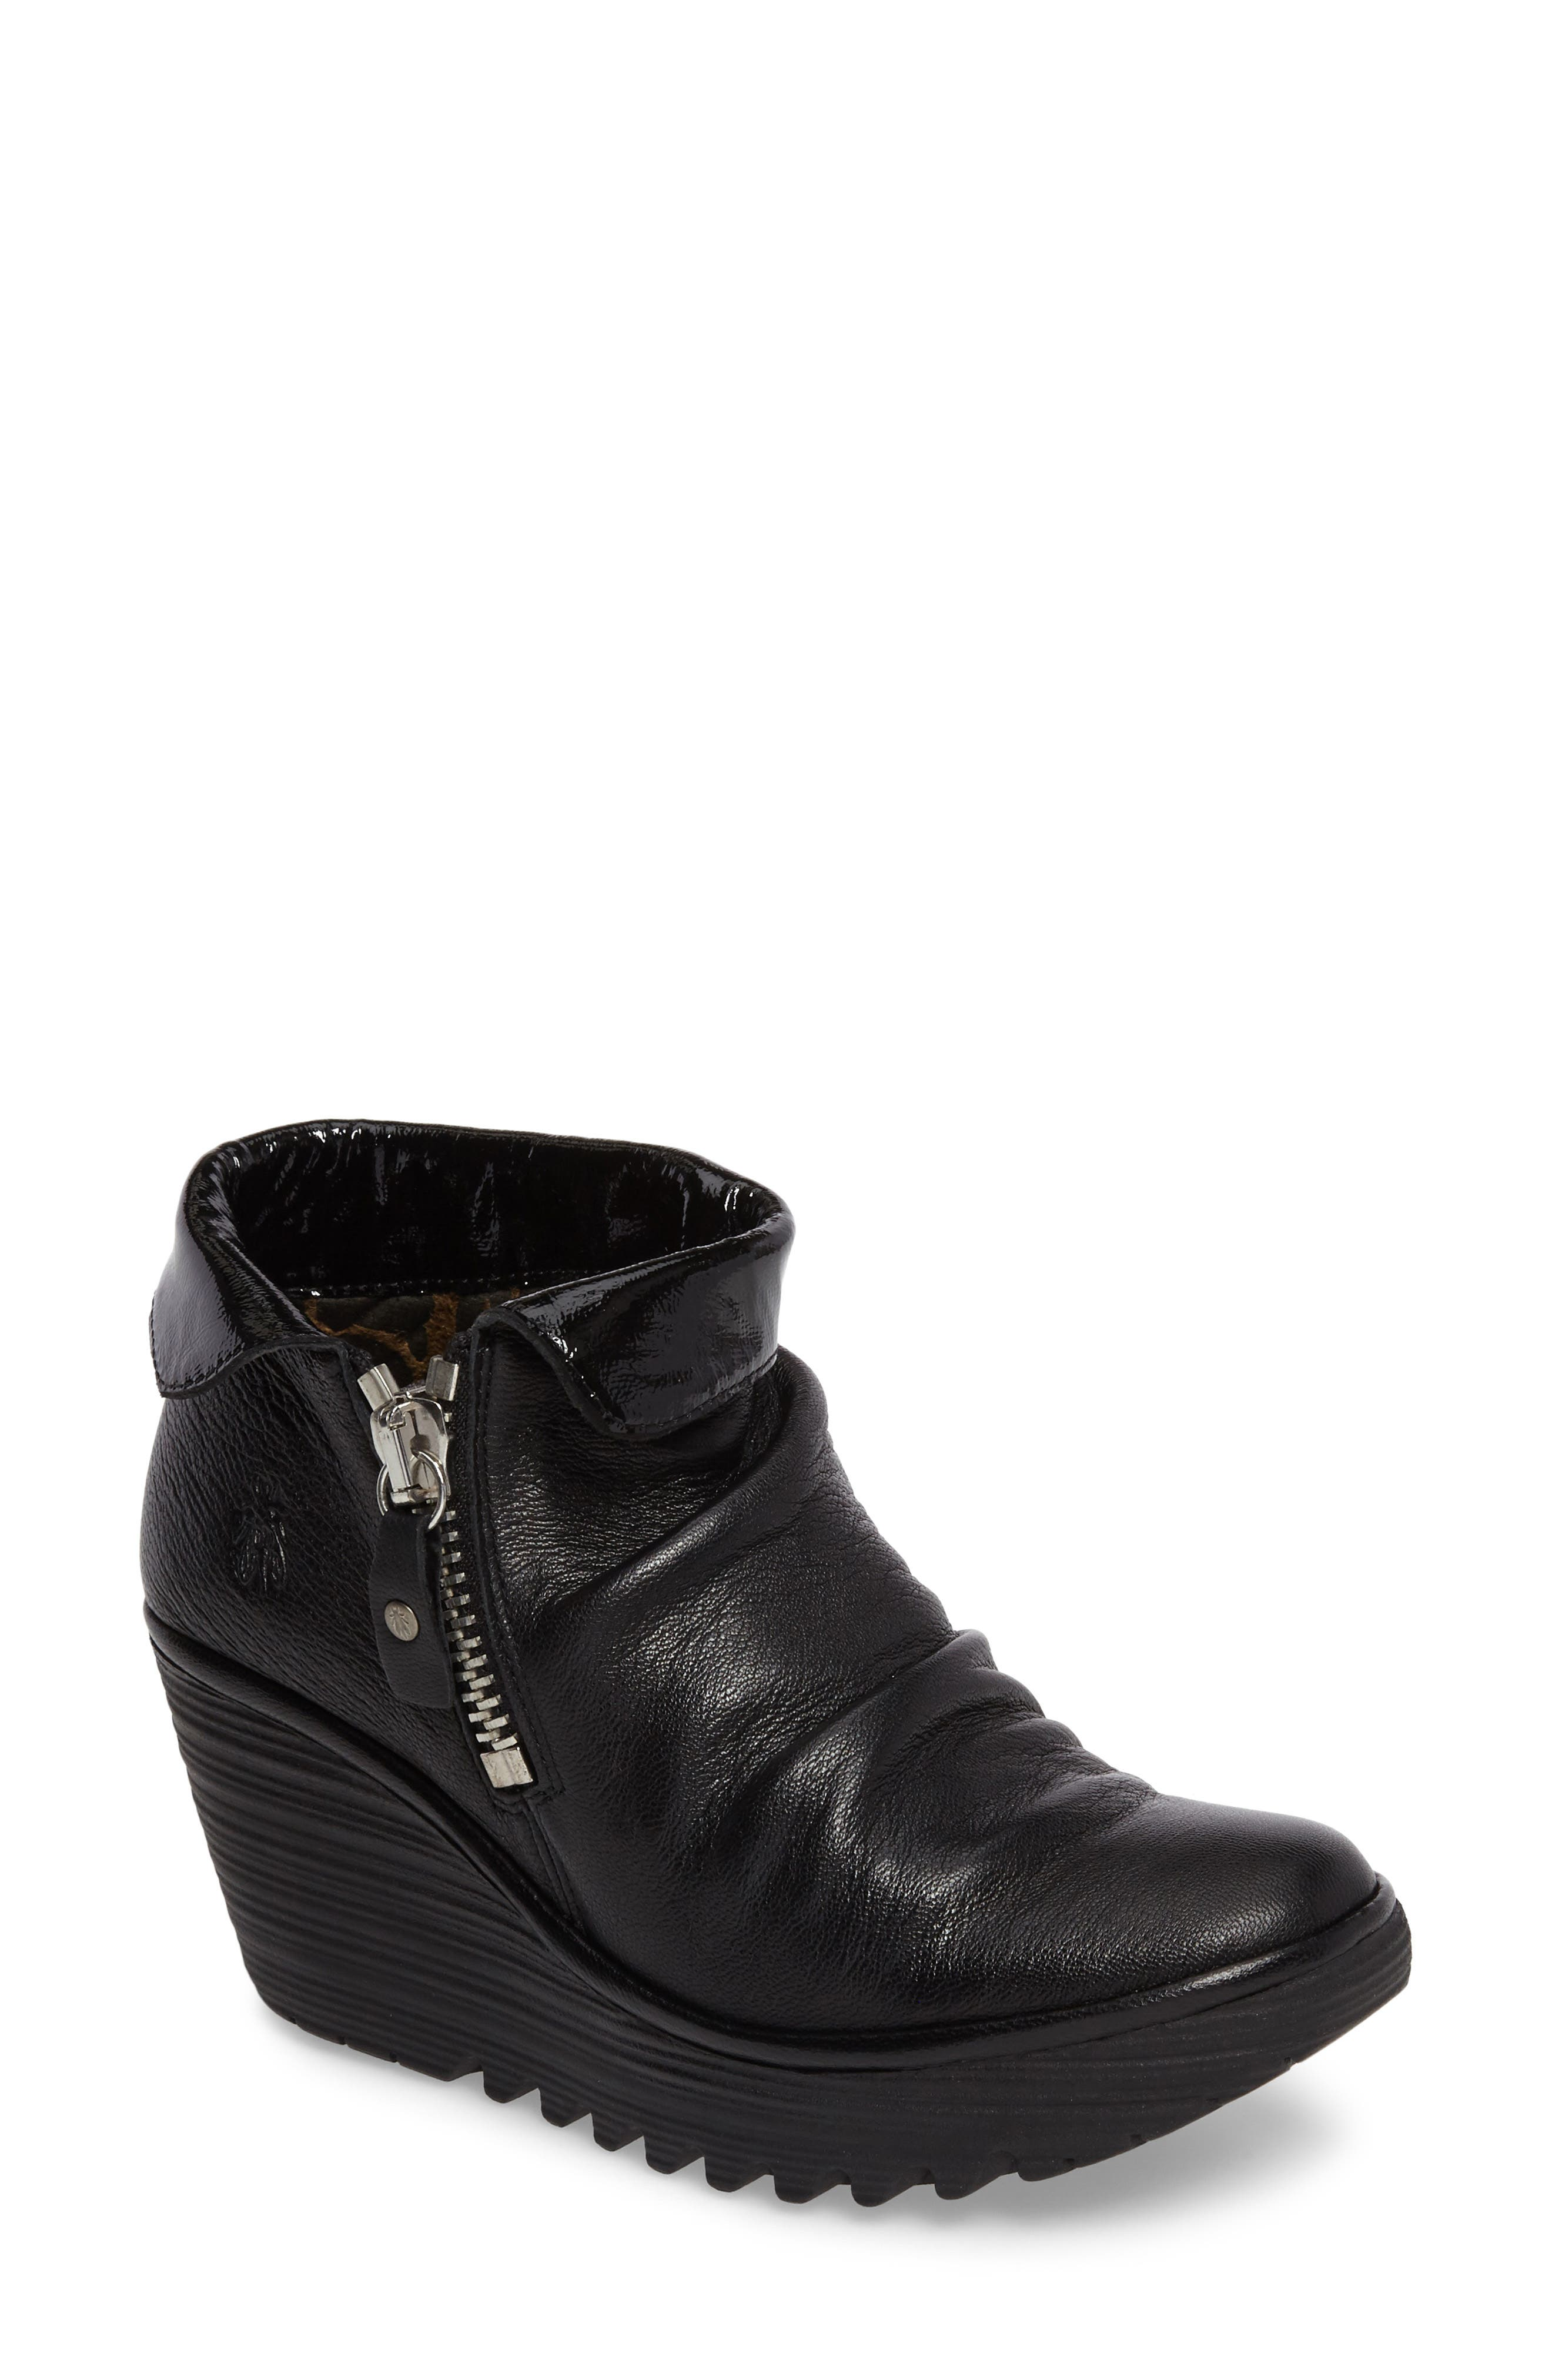 Yoxi Wedge Bootie,                         Main,                         color, Black Leather